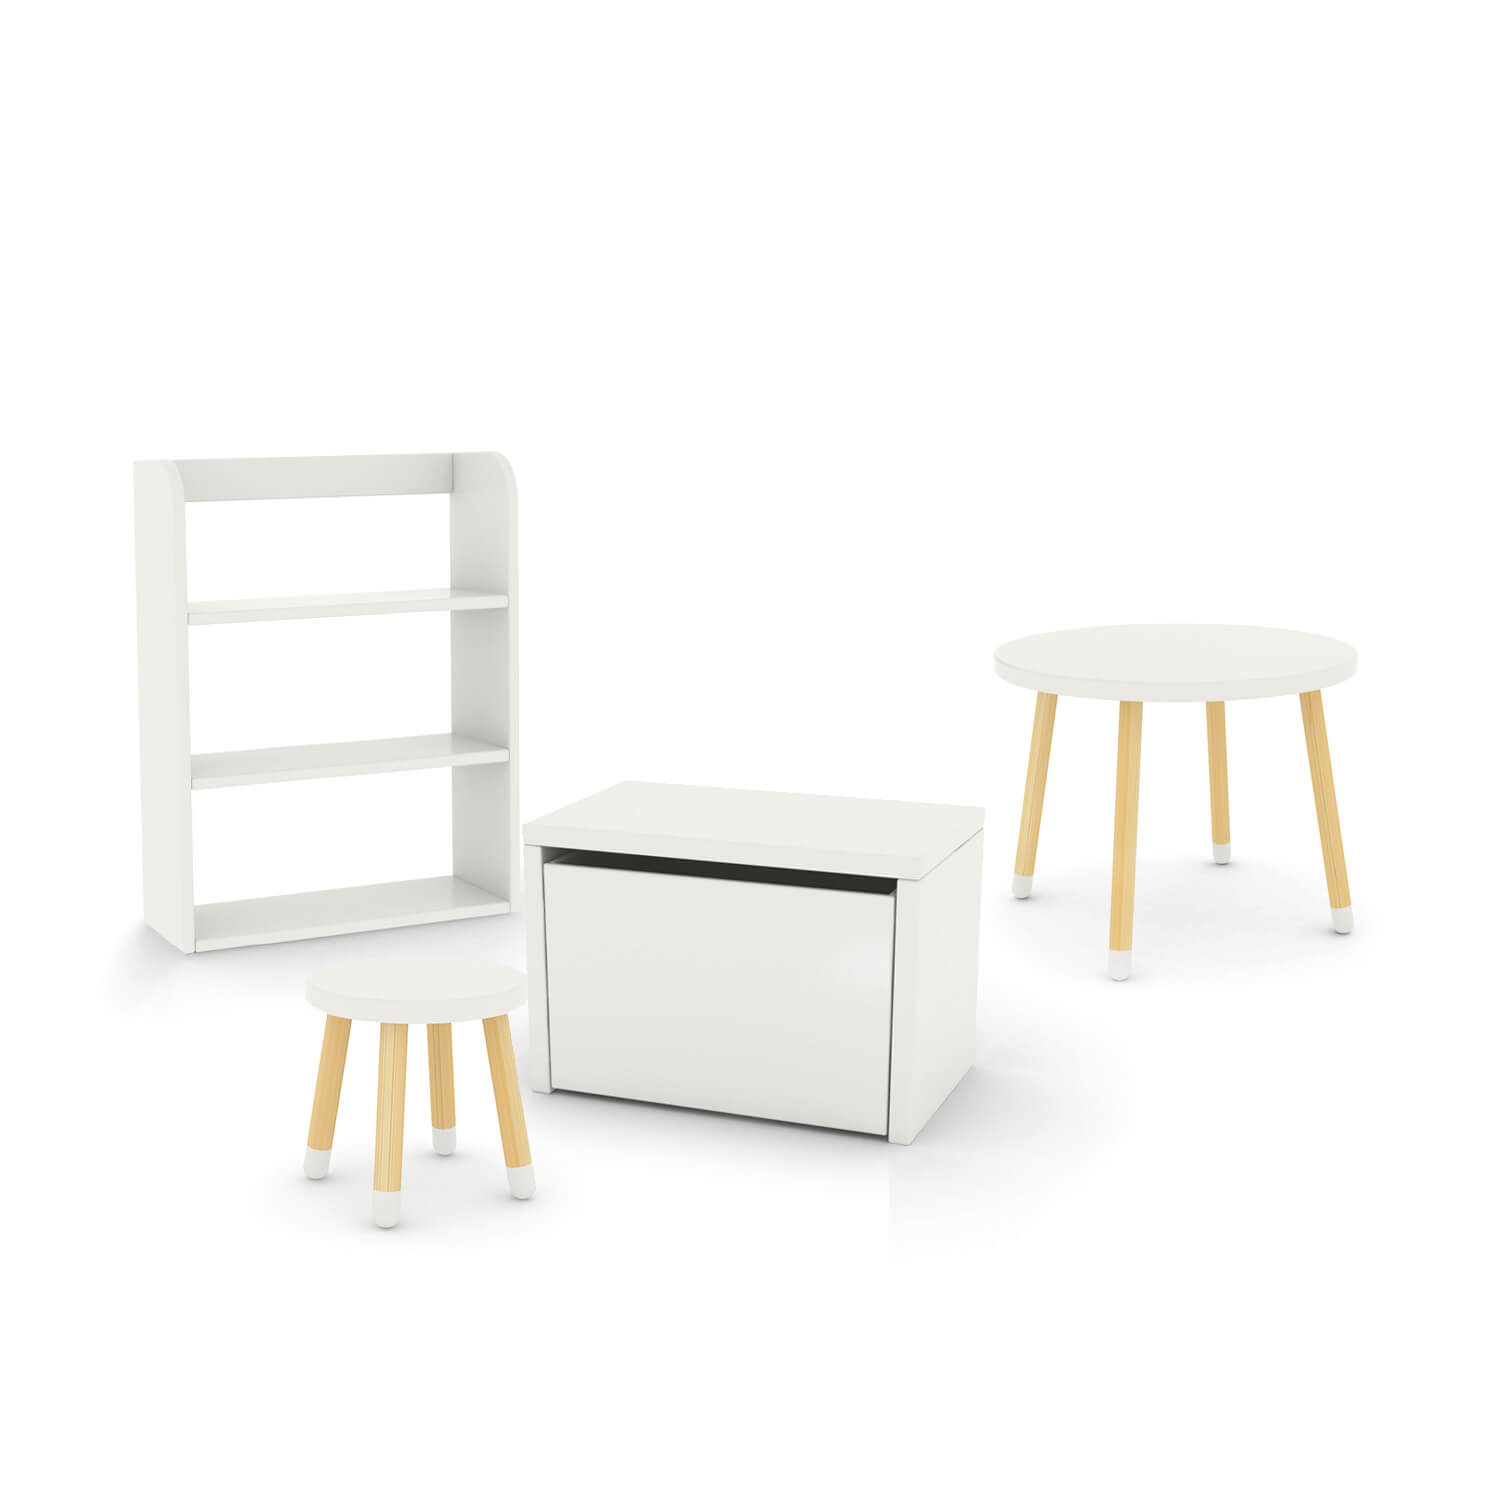 FLEXA Play Bedroom Set - table, bookcase, storage bench and stool (Colour: Multicolour)